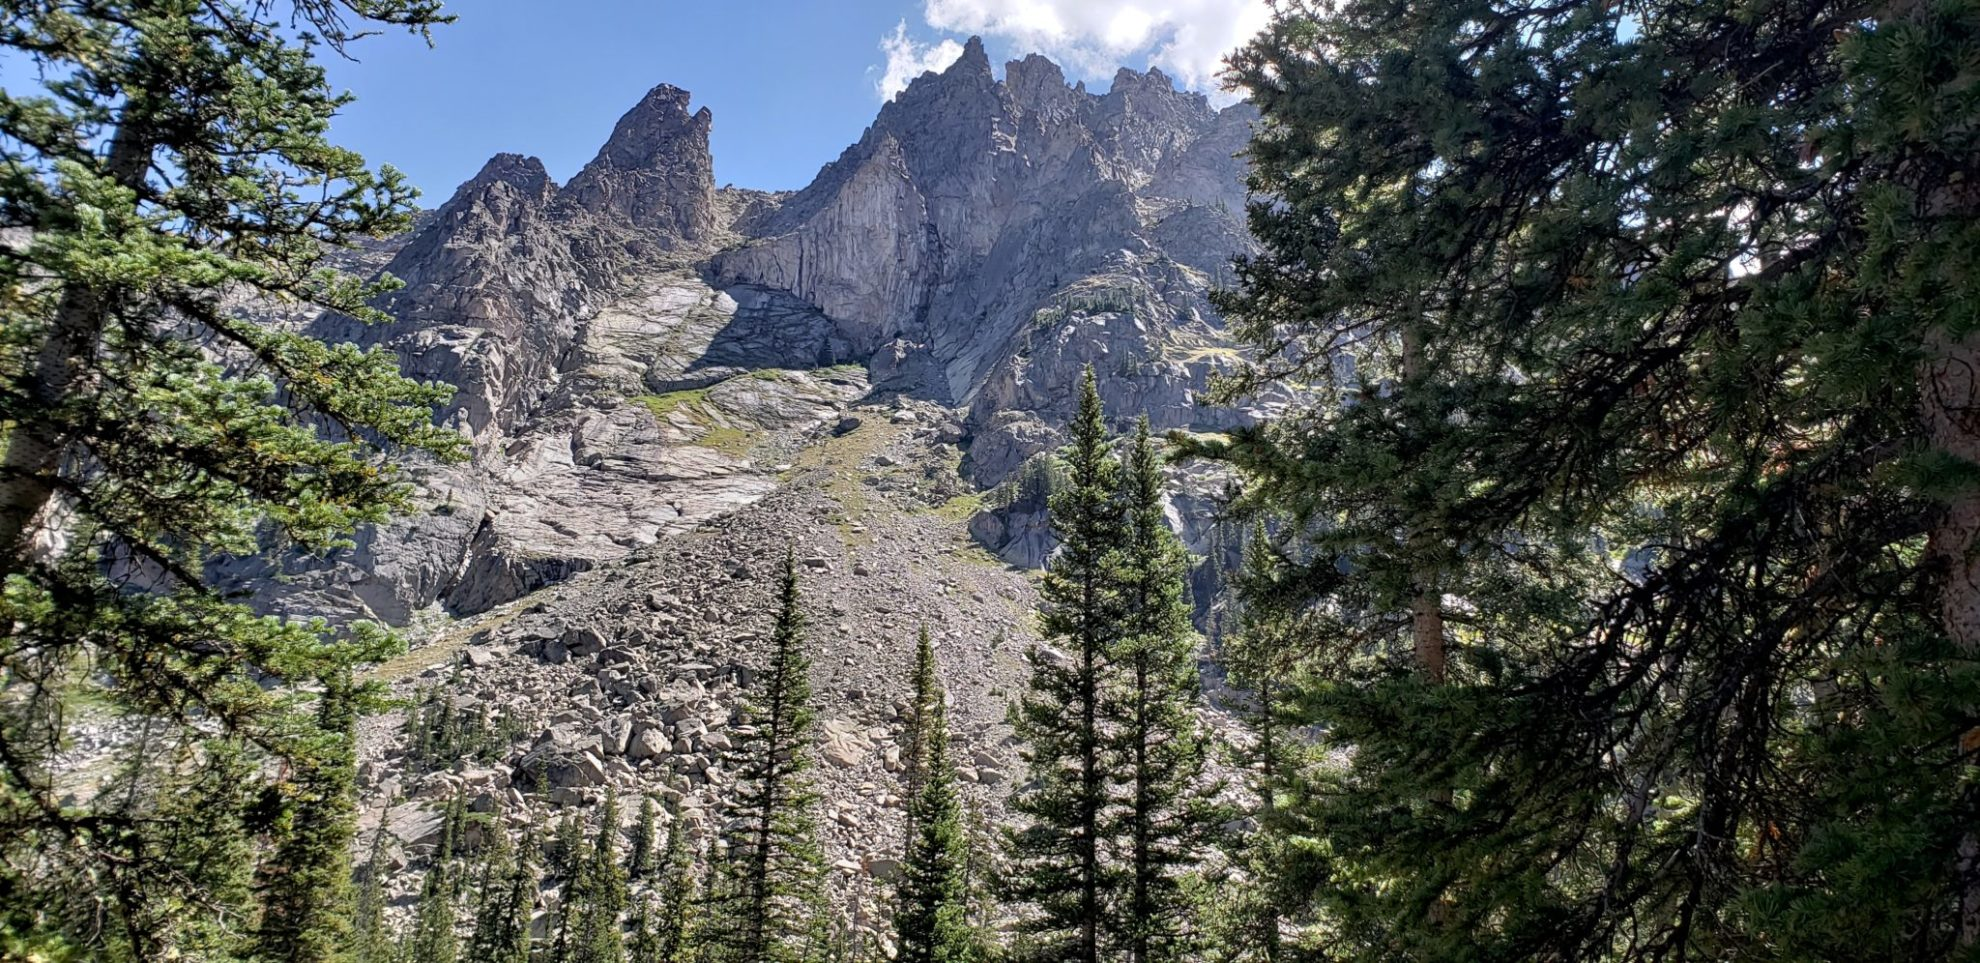 Jagged peaks in the Indian Peaks Wilderness